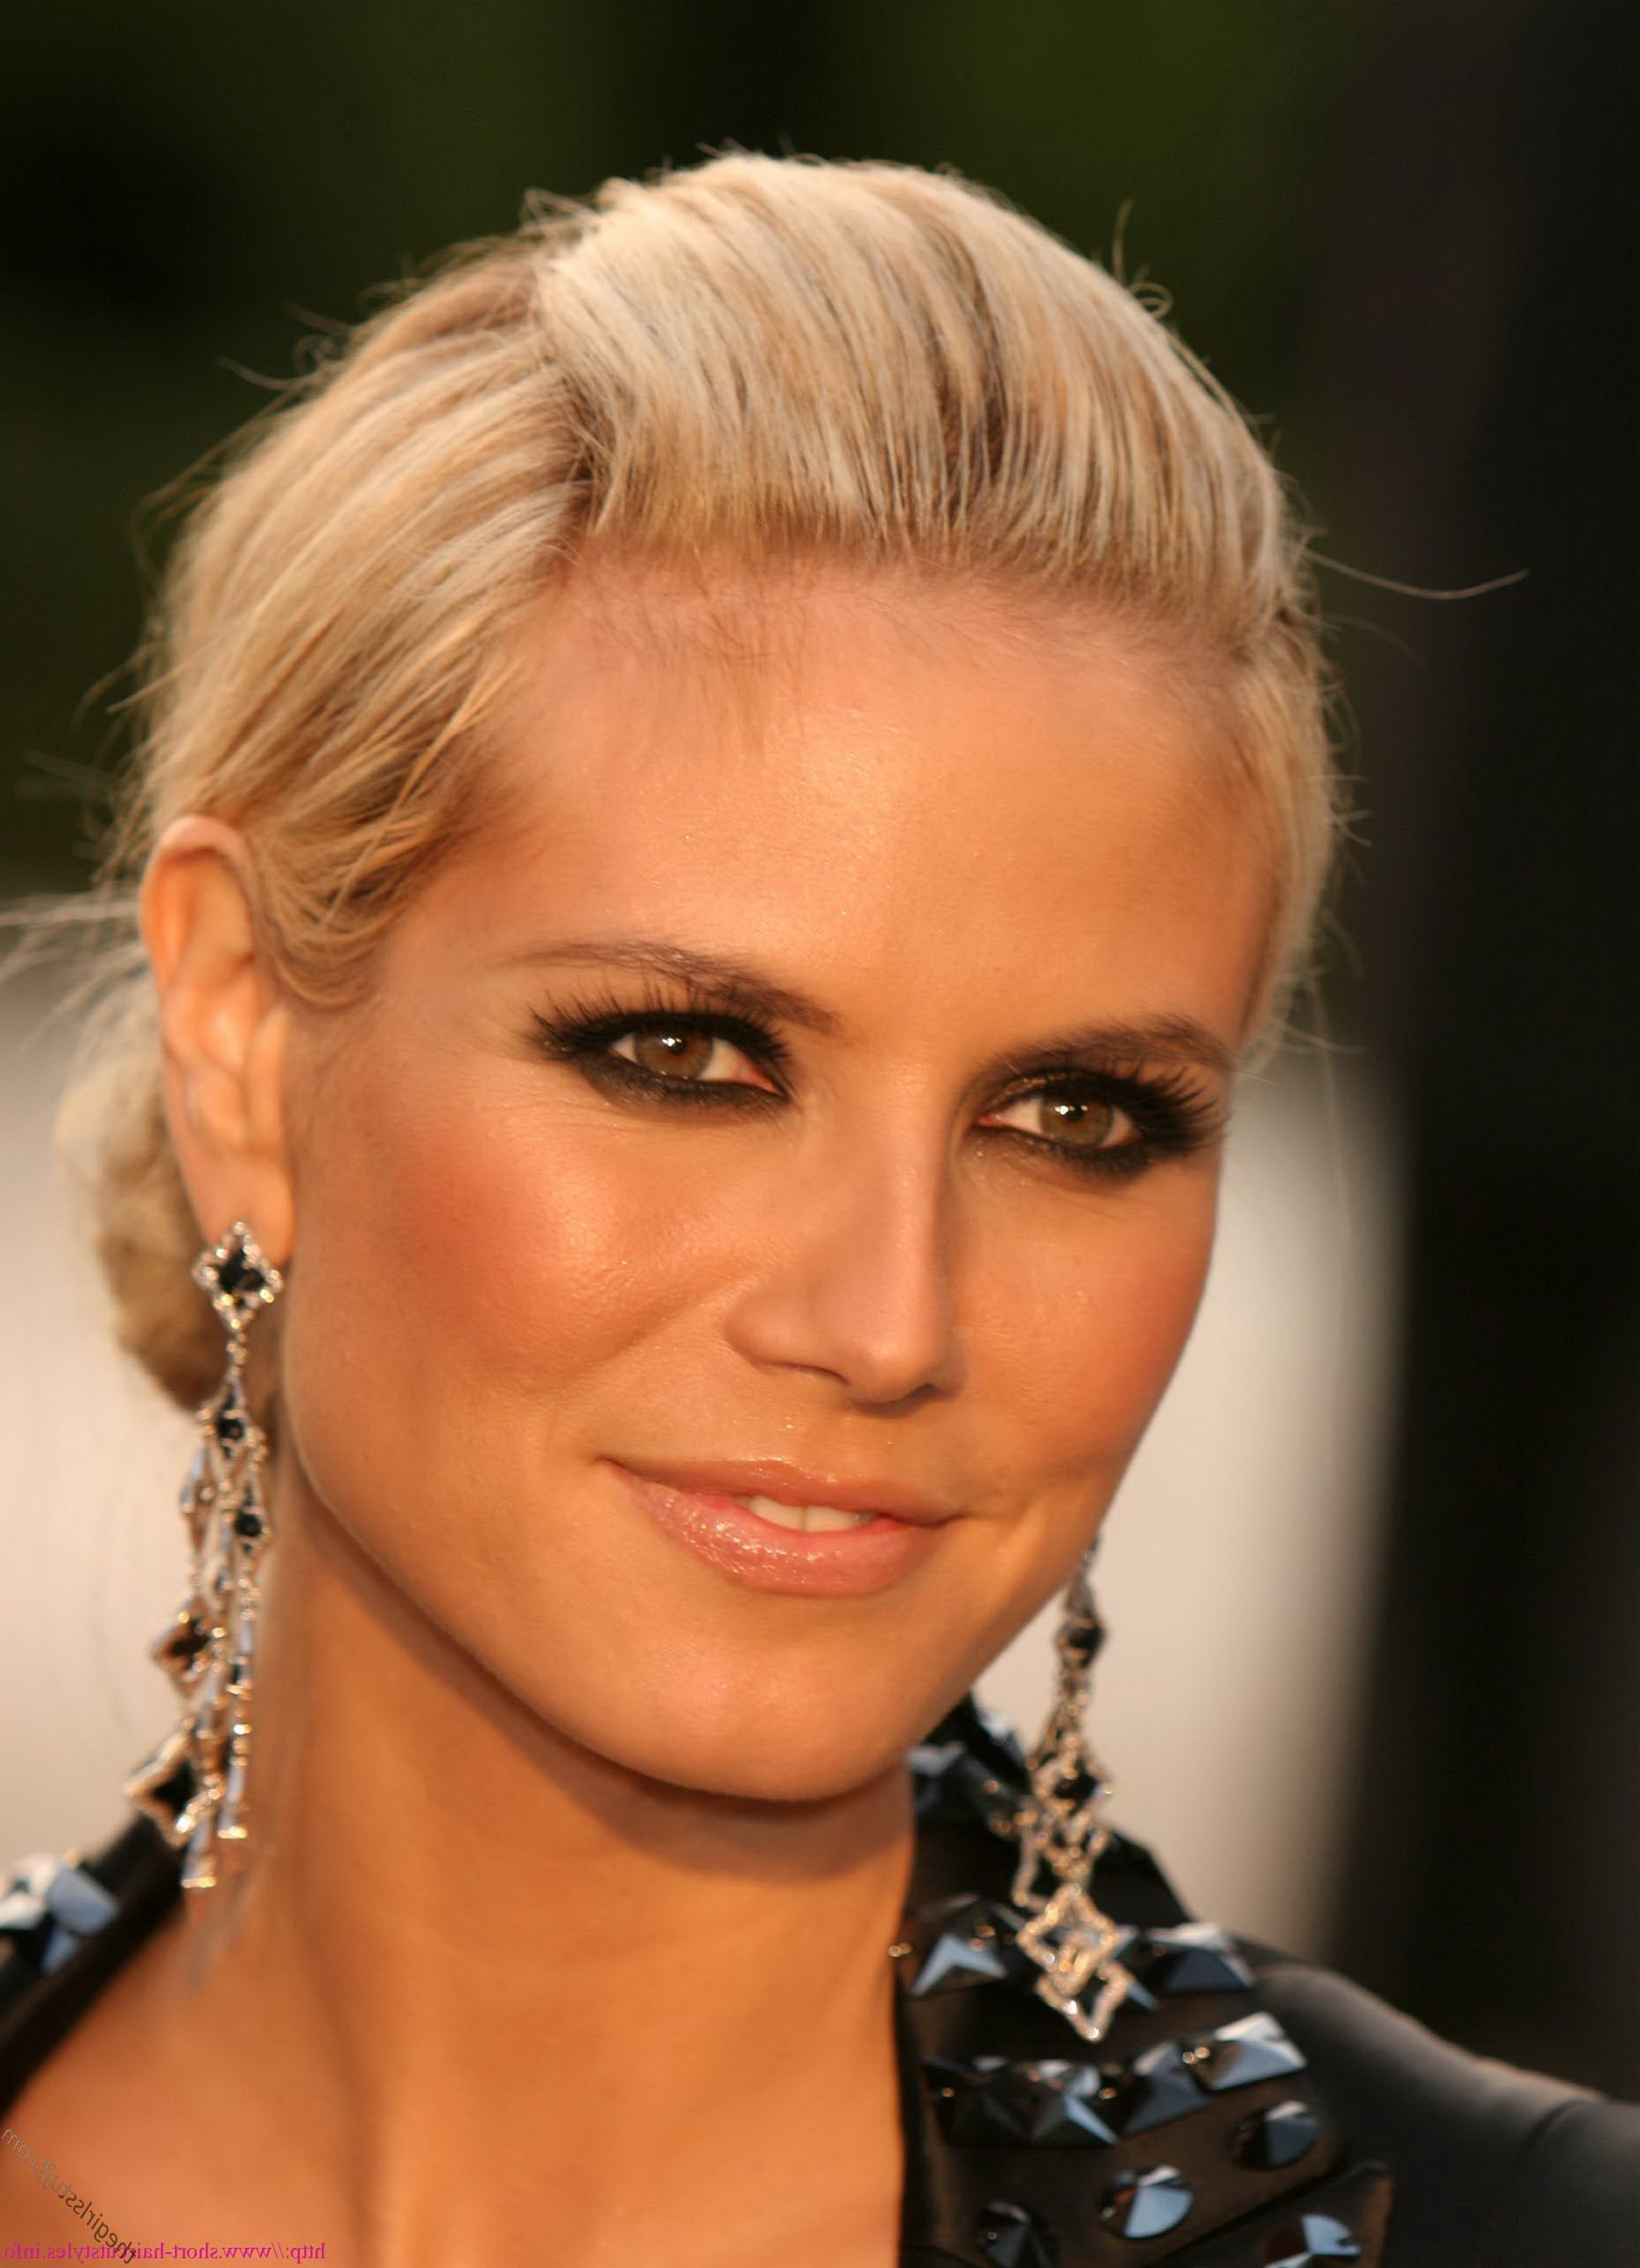 Heidi Klum Hairstyles 9 | Hairstyles And Fashion Inspirations With Heidi Klum Short Haircuts (View 5 of 25)